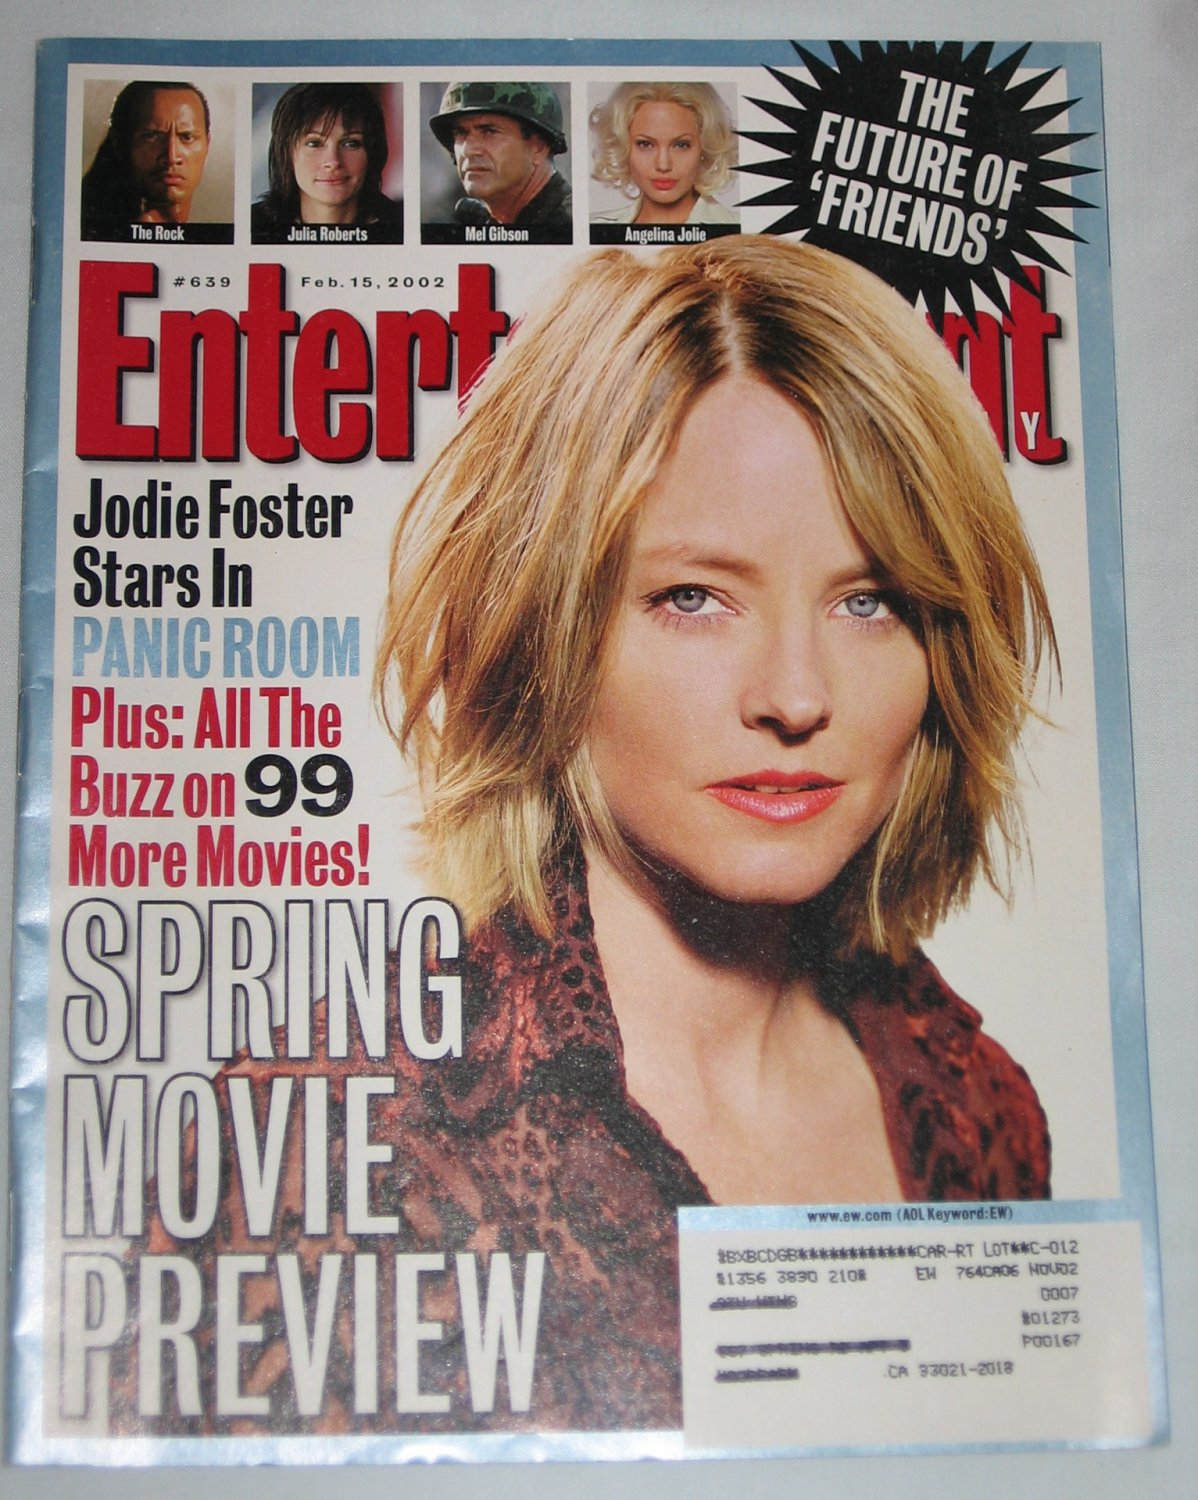 ENTERTAINMENT WEEKLY Magazine 639 Jodie Foster Panic Room The Future of Friends February 15 2002